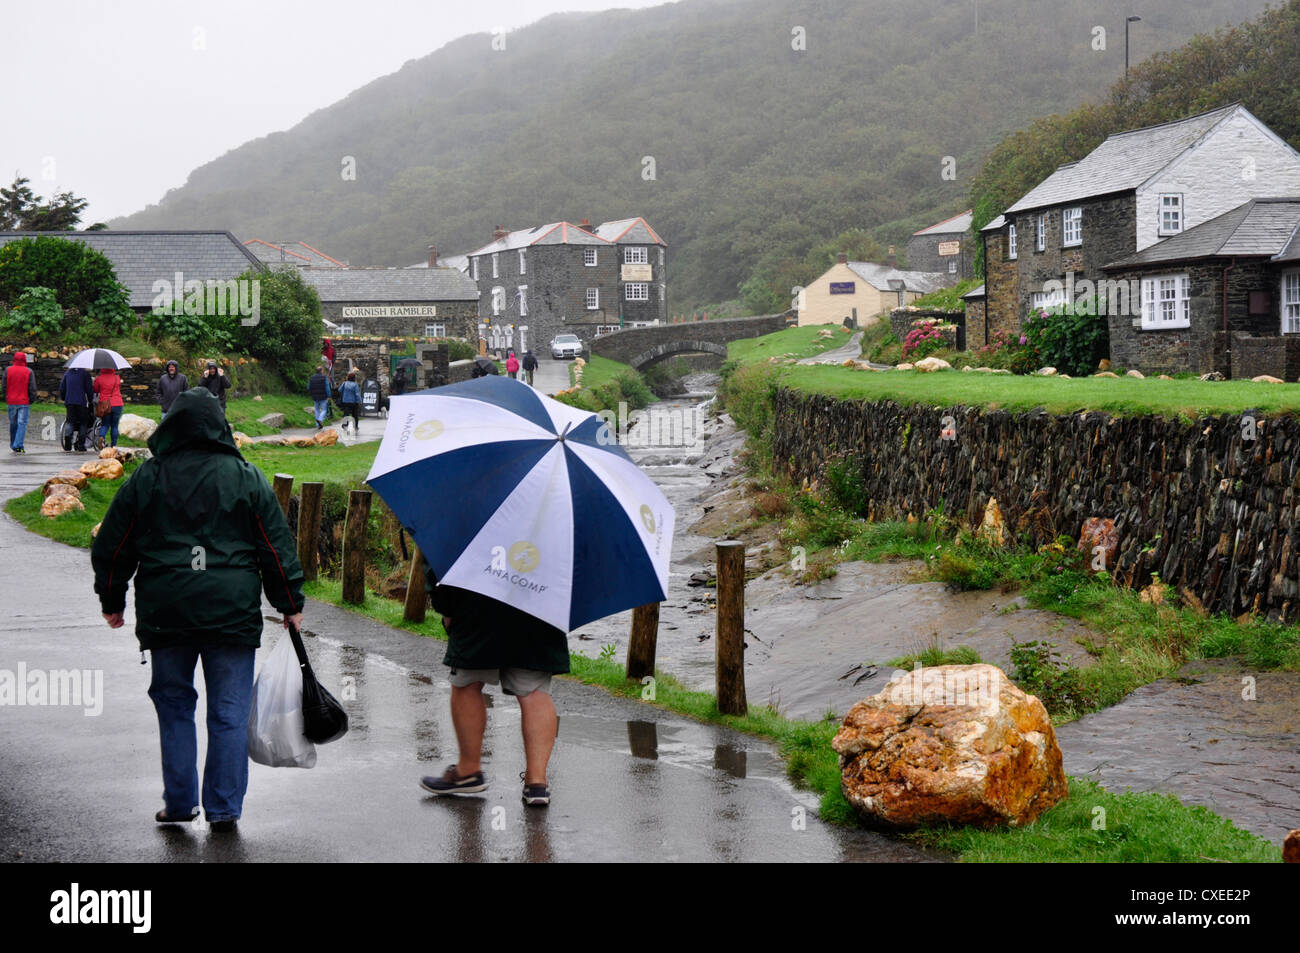 North Cornwall - Boscastle village - a wet day in September - tourists making the best of the weather - walking - Stock Image